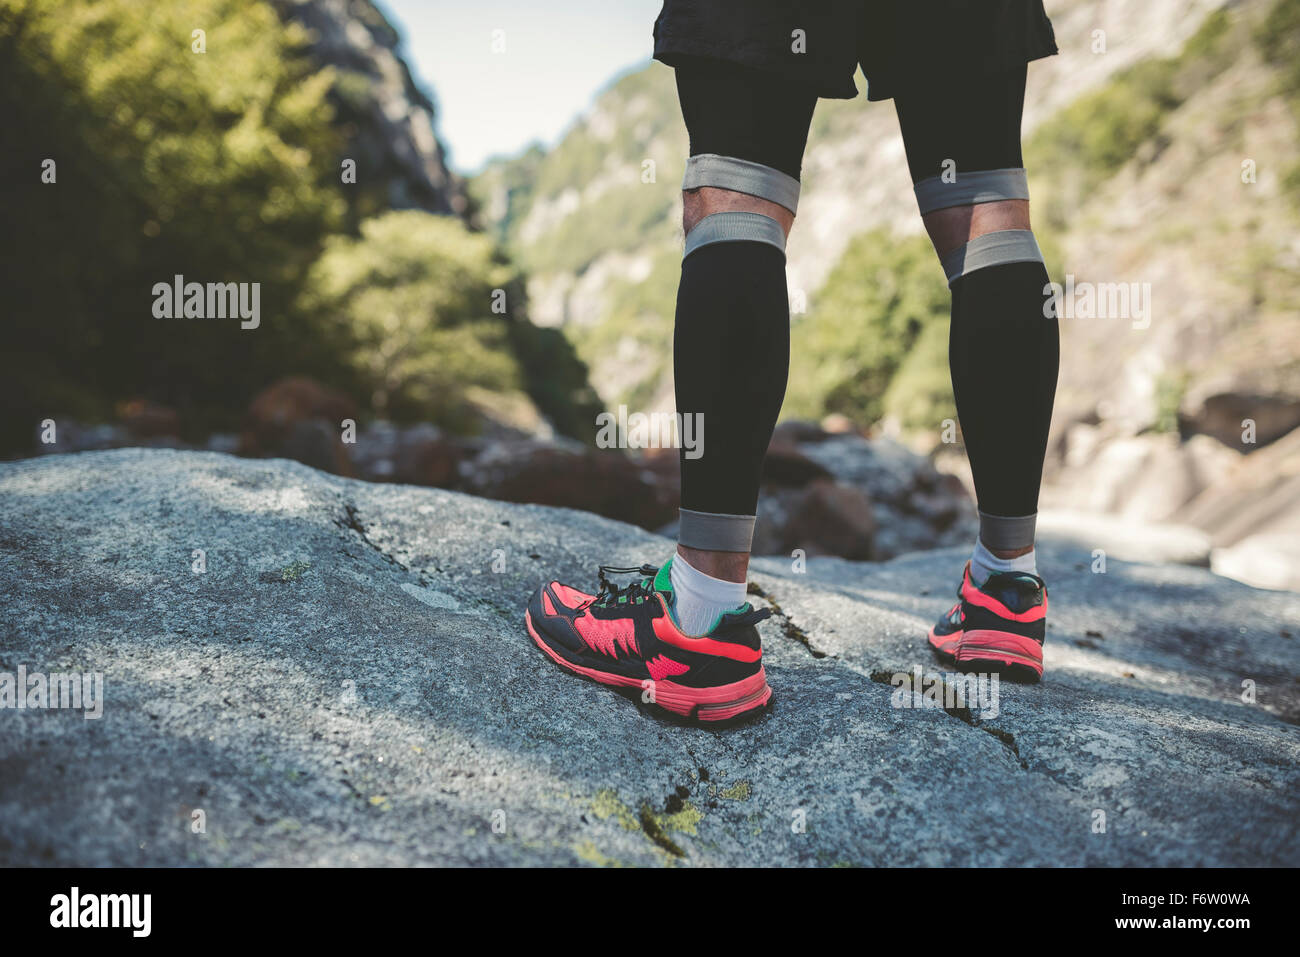 Ultra runner in mountains standing on rock - Stock Image